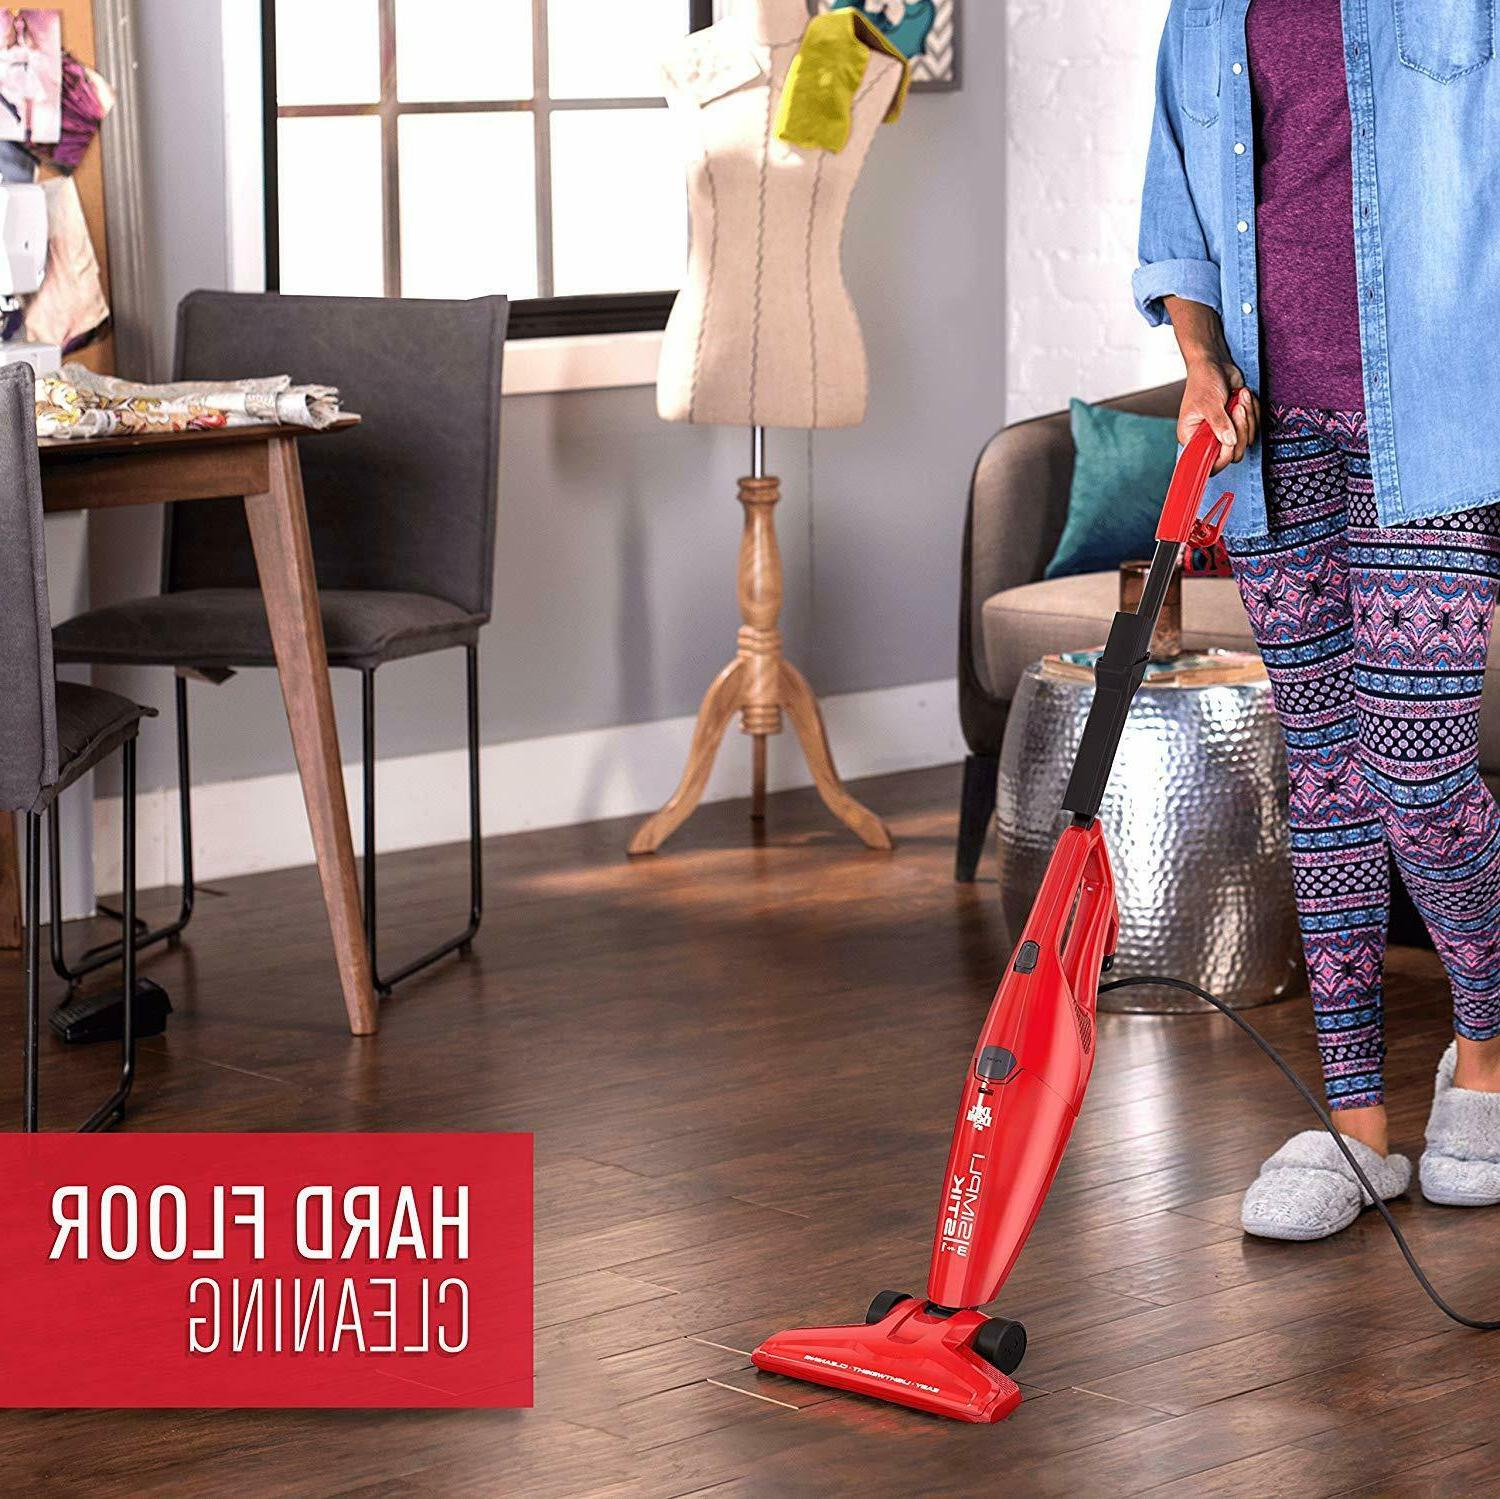 Cleaner, 3-in-1 Hand and Stick Vac,